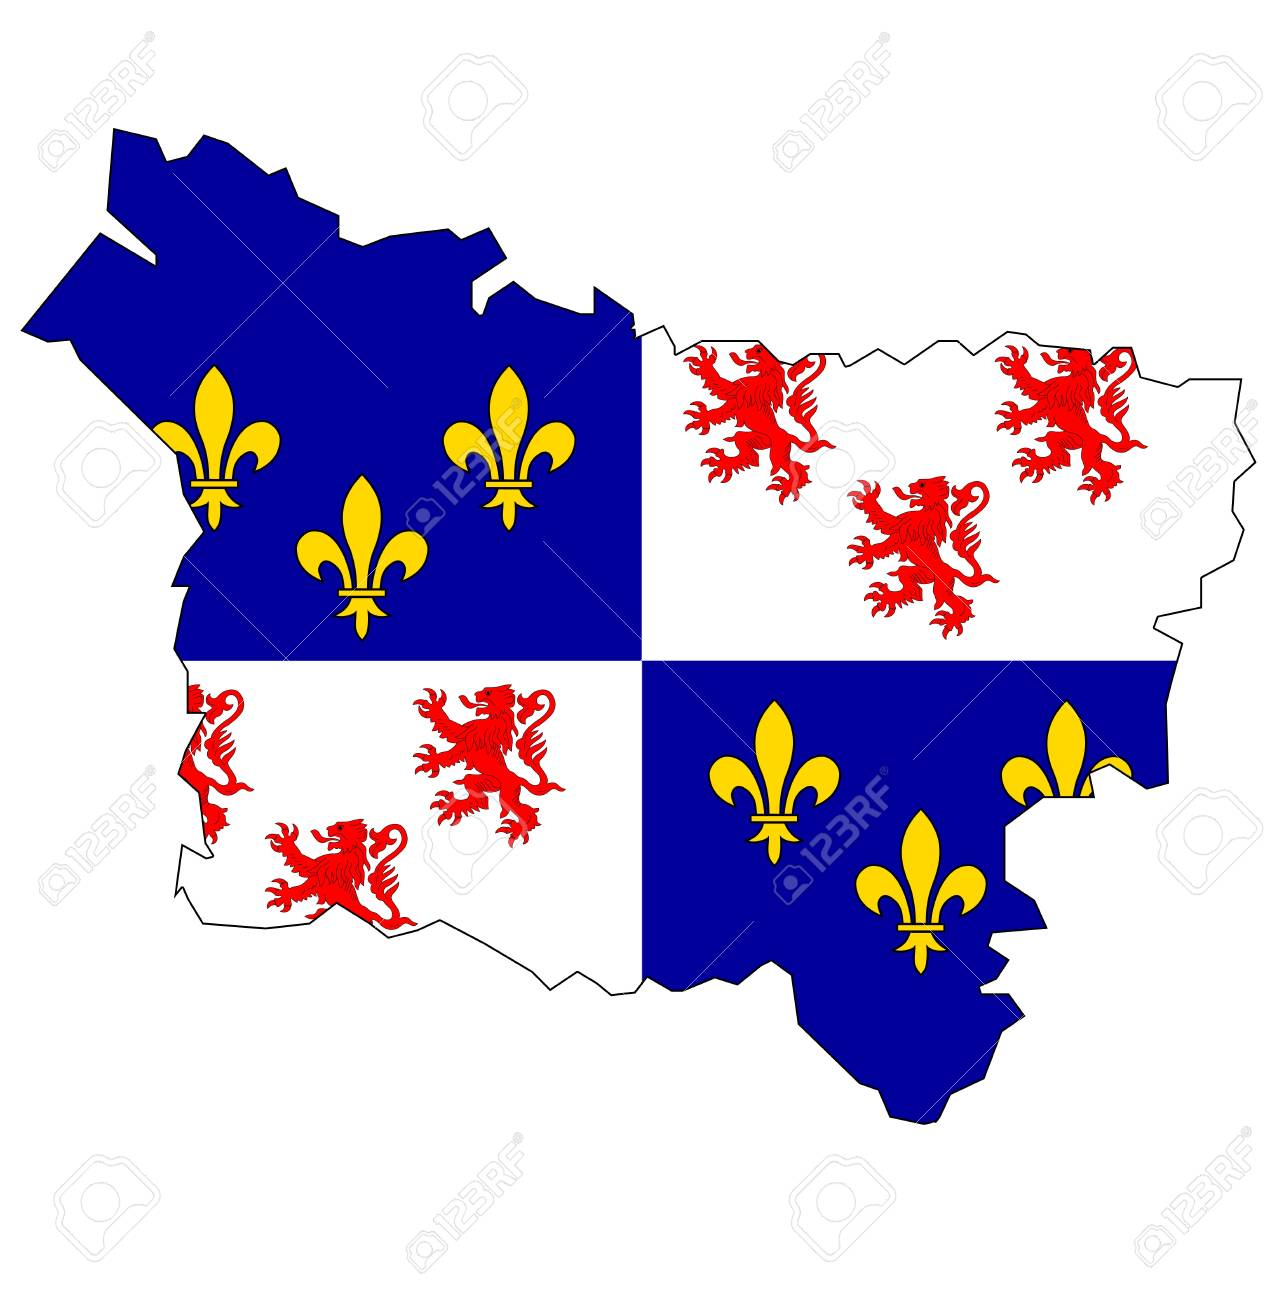 Old Map With Flag Of Department Administrative Region Of France Stock Photo Picture And Royalty Free Image Image 11495979